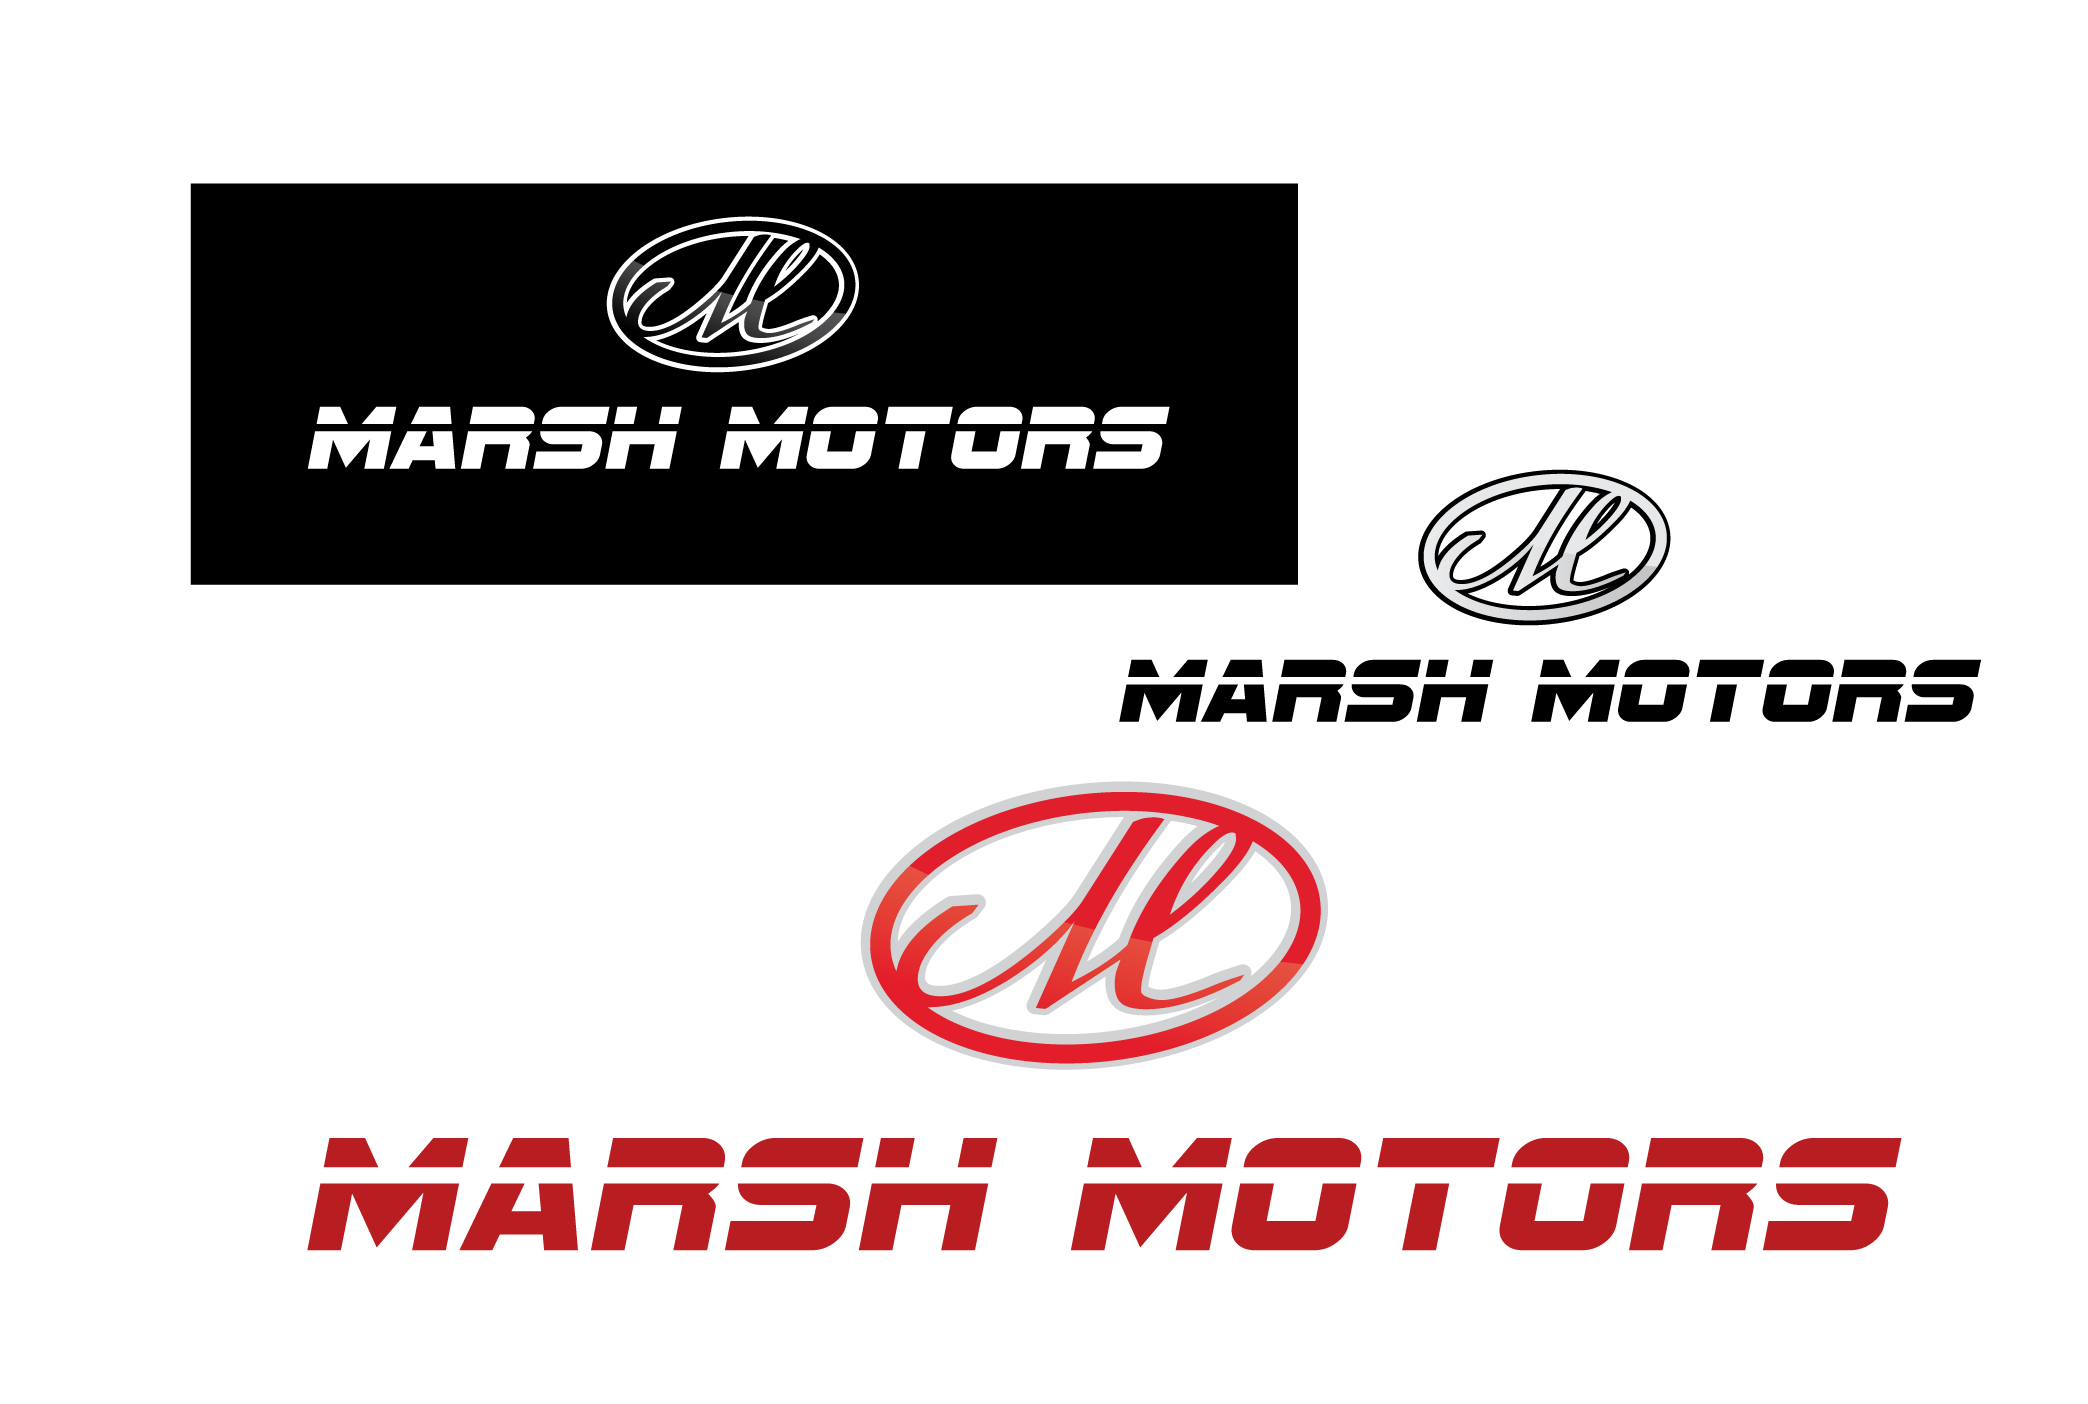 Logo Design by 354studio - Entry No. 42 in the Logo Design Contest Marsh Motors Chrysler Logo Design.